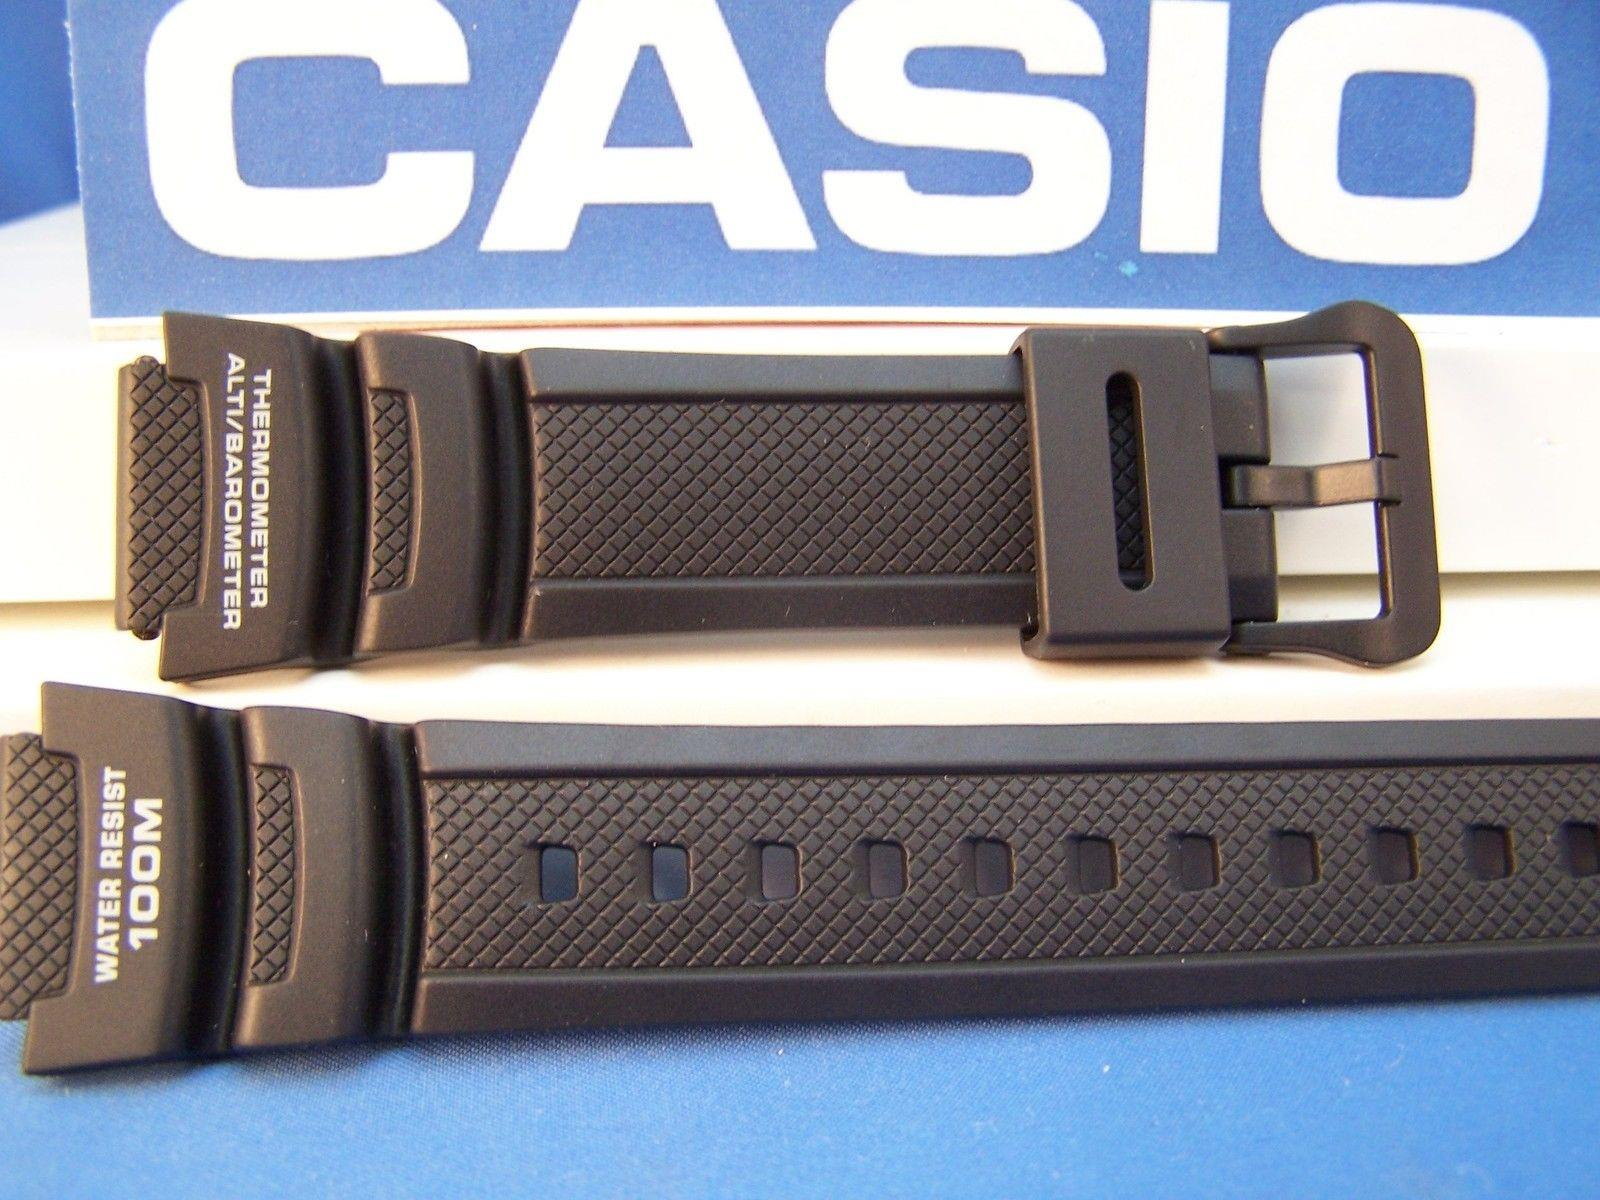 Casio watchband SGW-400 & SGW-300 Blk Rub  Twin Sensor Altimeter/Barometer